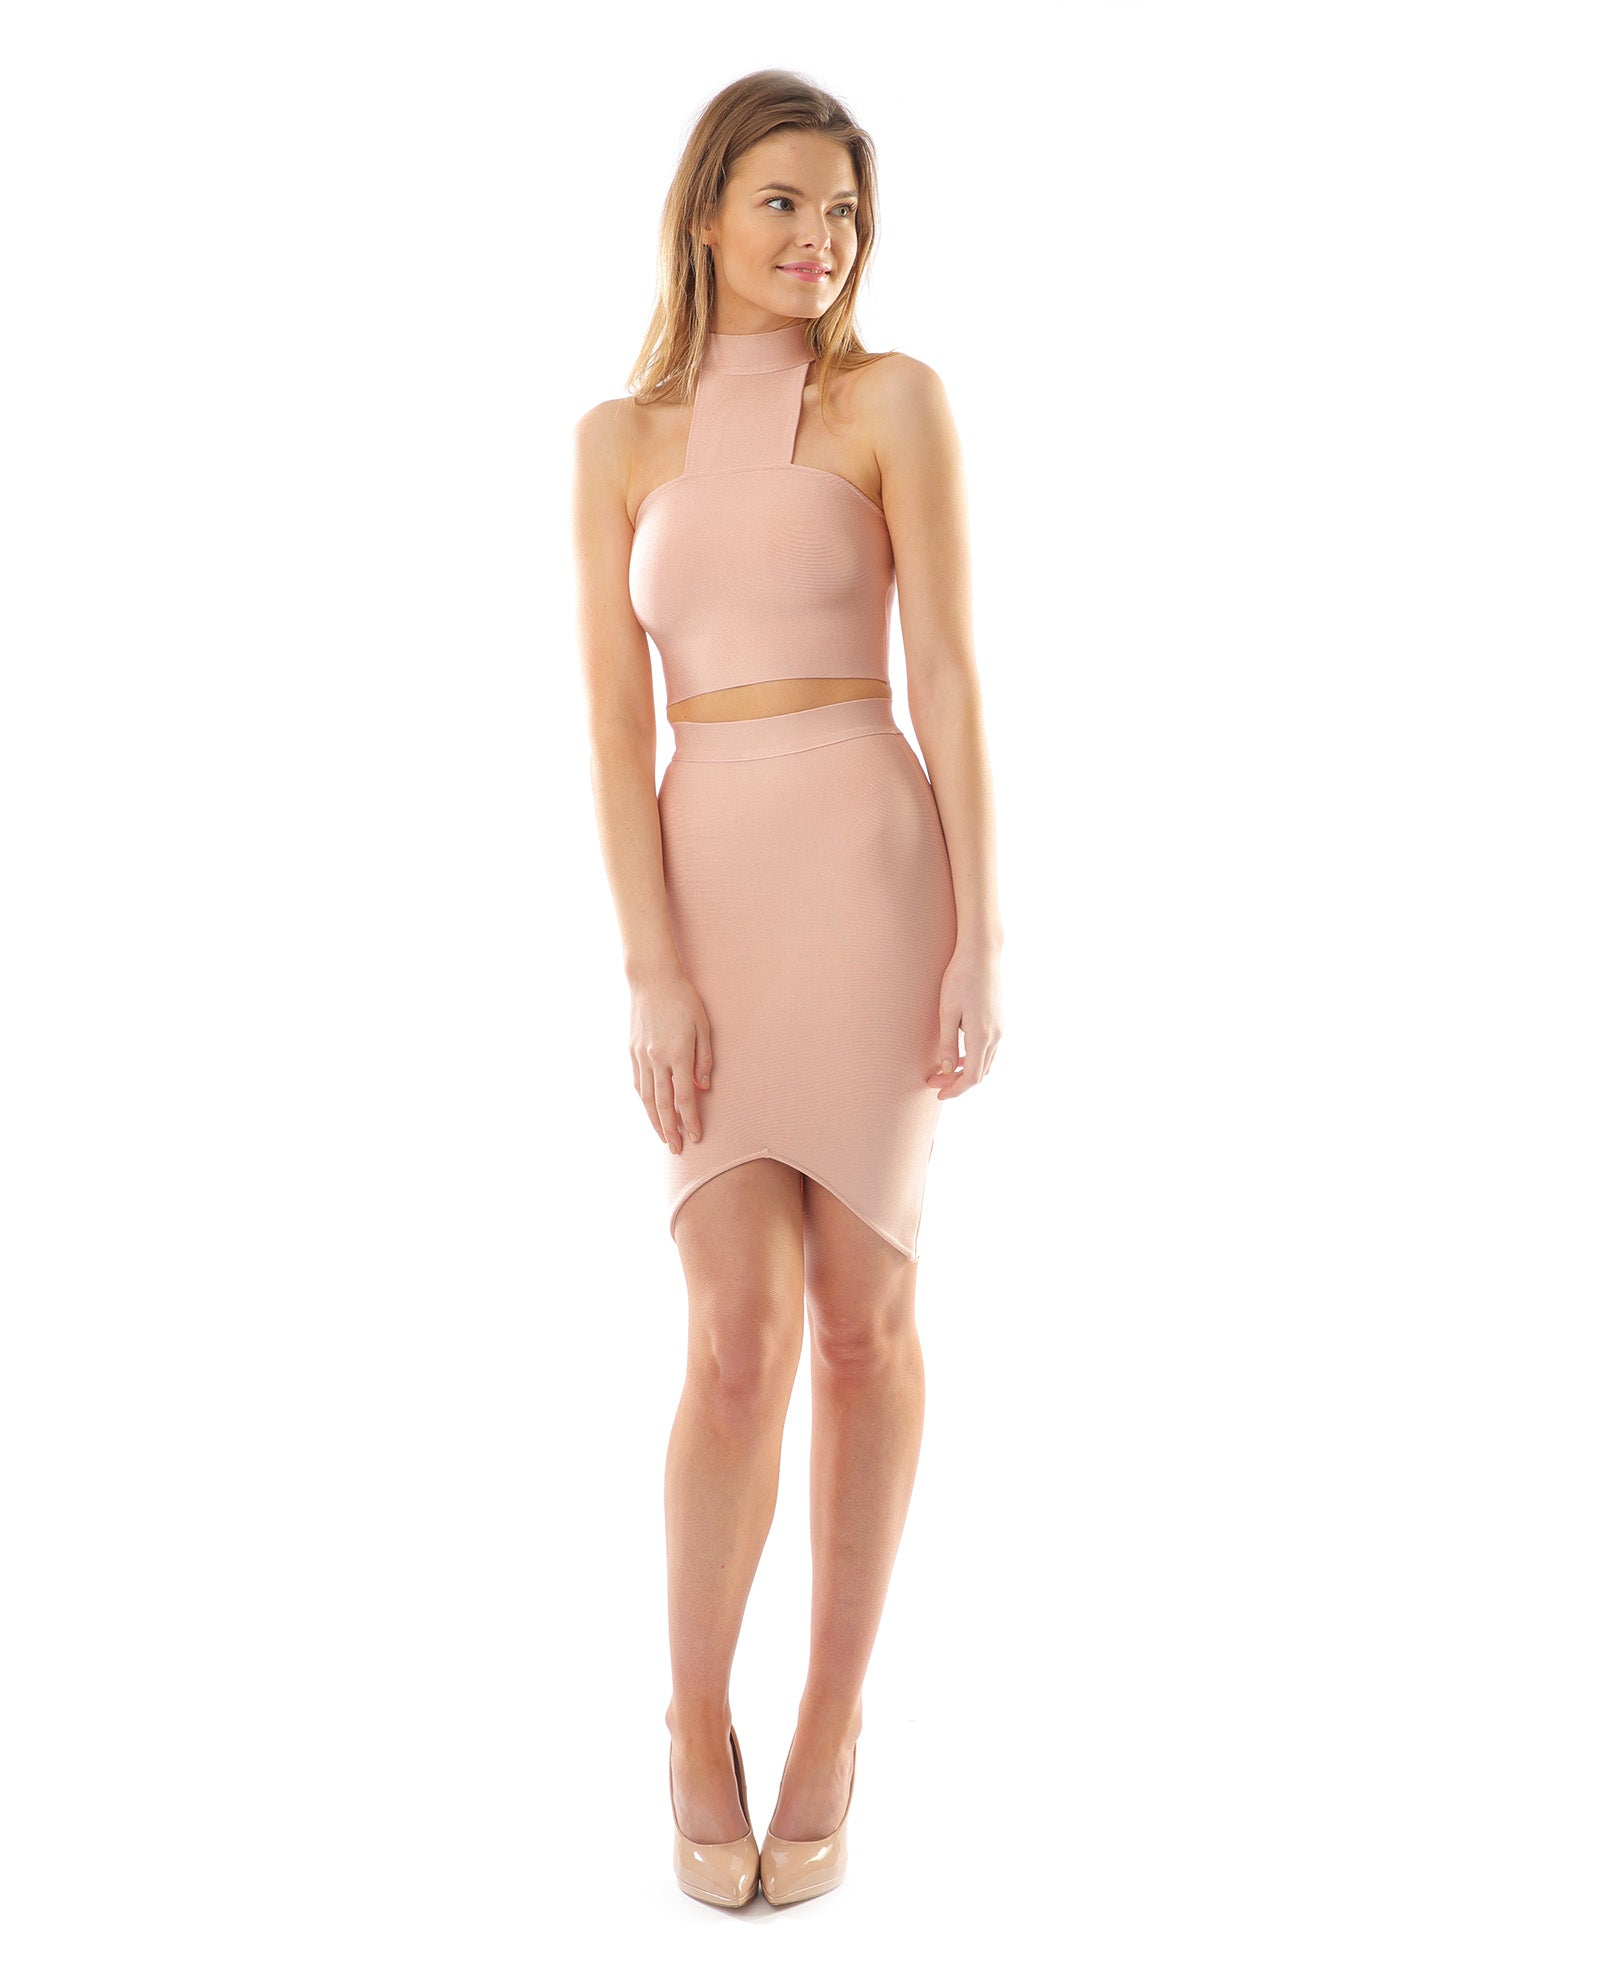 Rent dress | Pale pink bodycon two piece | Hirestreetuk.com